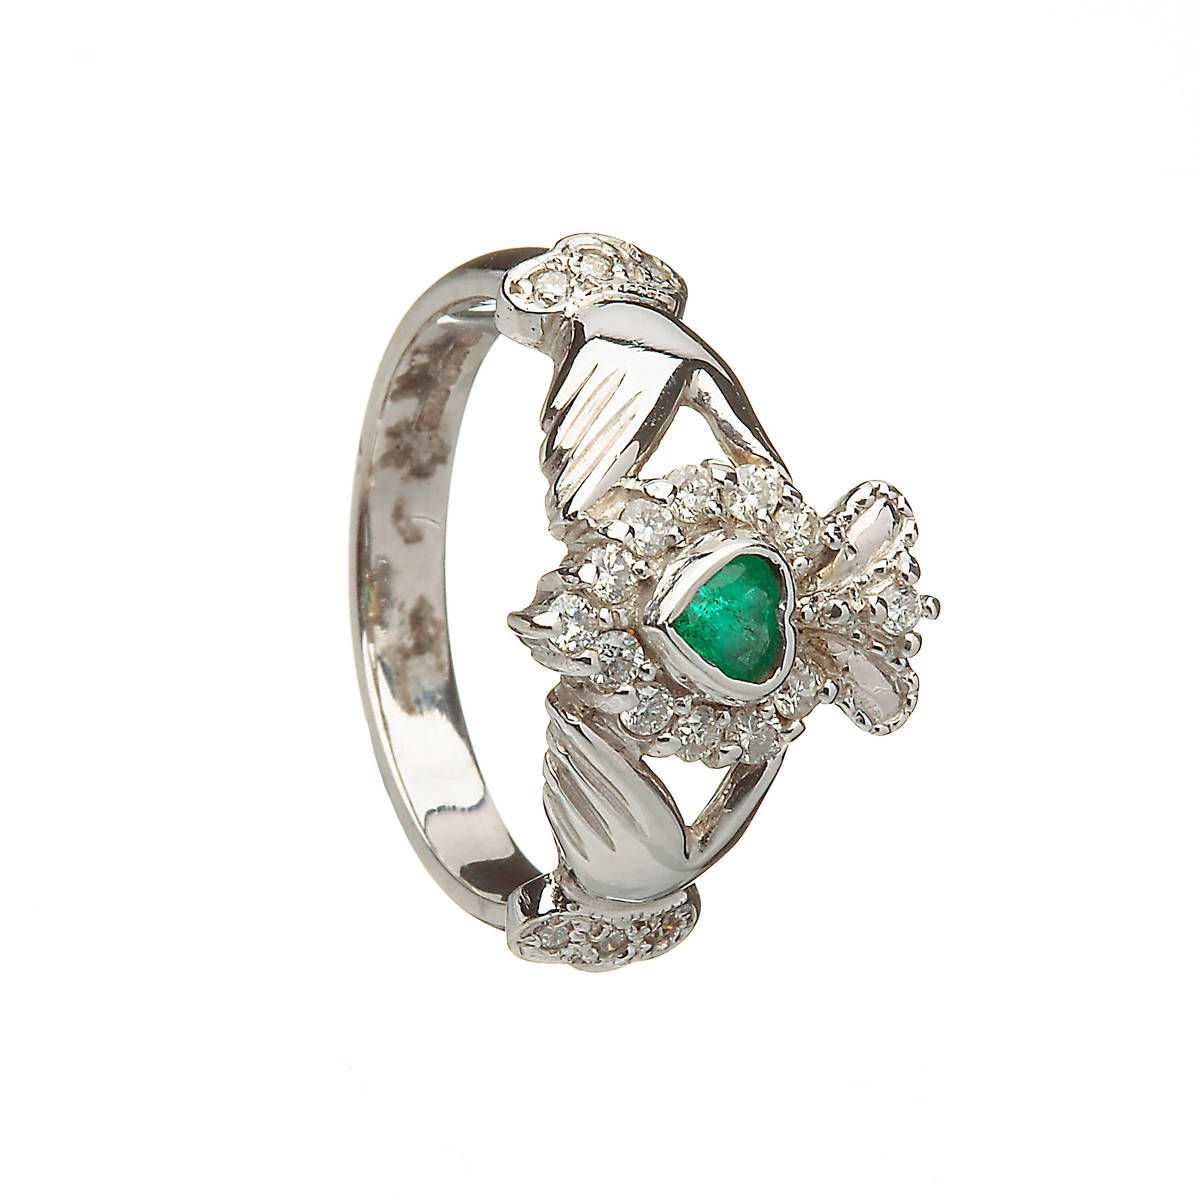 10ct W/gold Diamond & Emerald Claddagh Ring 13mm Irish made diamond and emerald claddagh engagement ring in 10ct white gold